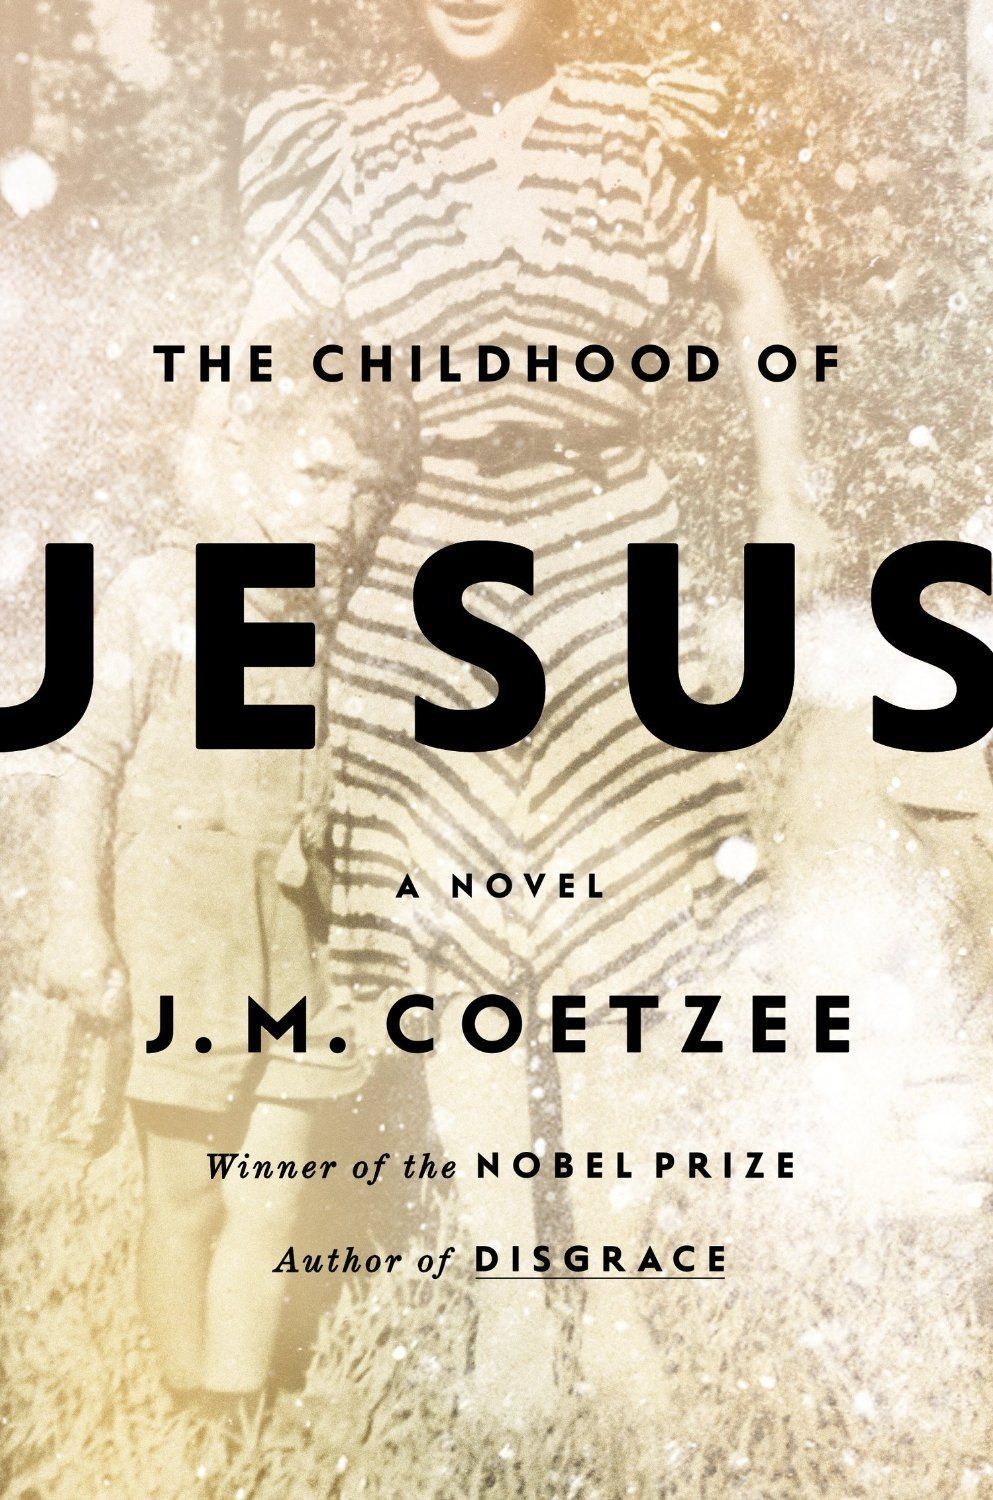 'The Childhood of Jesus'